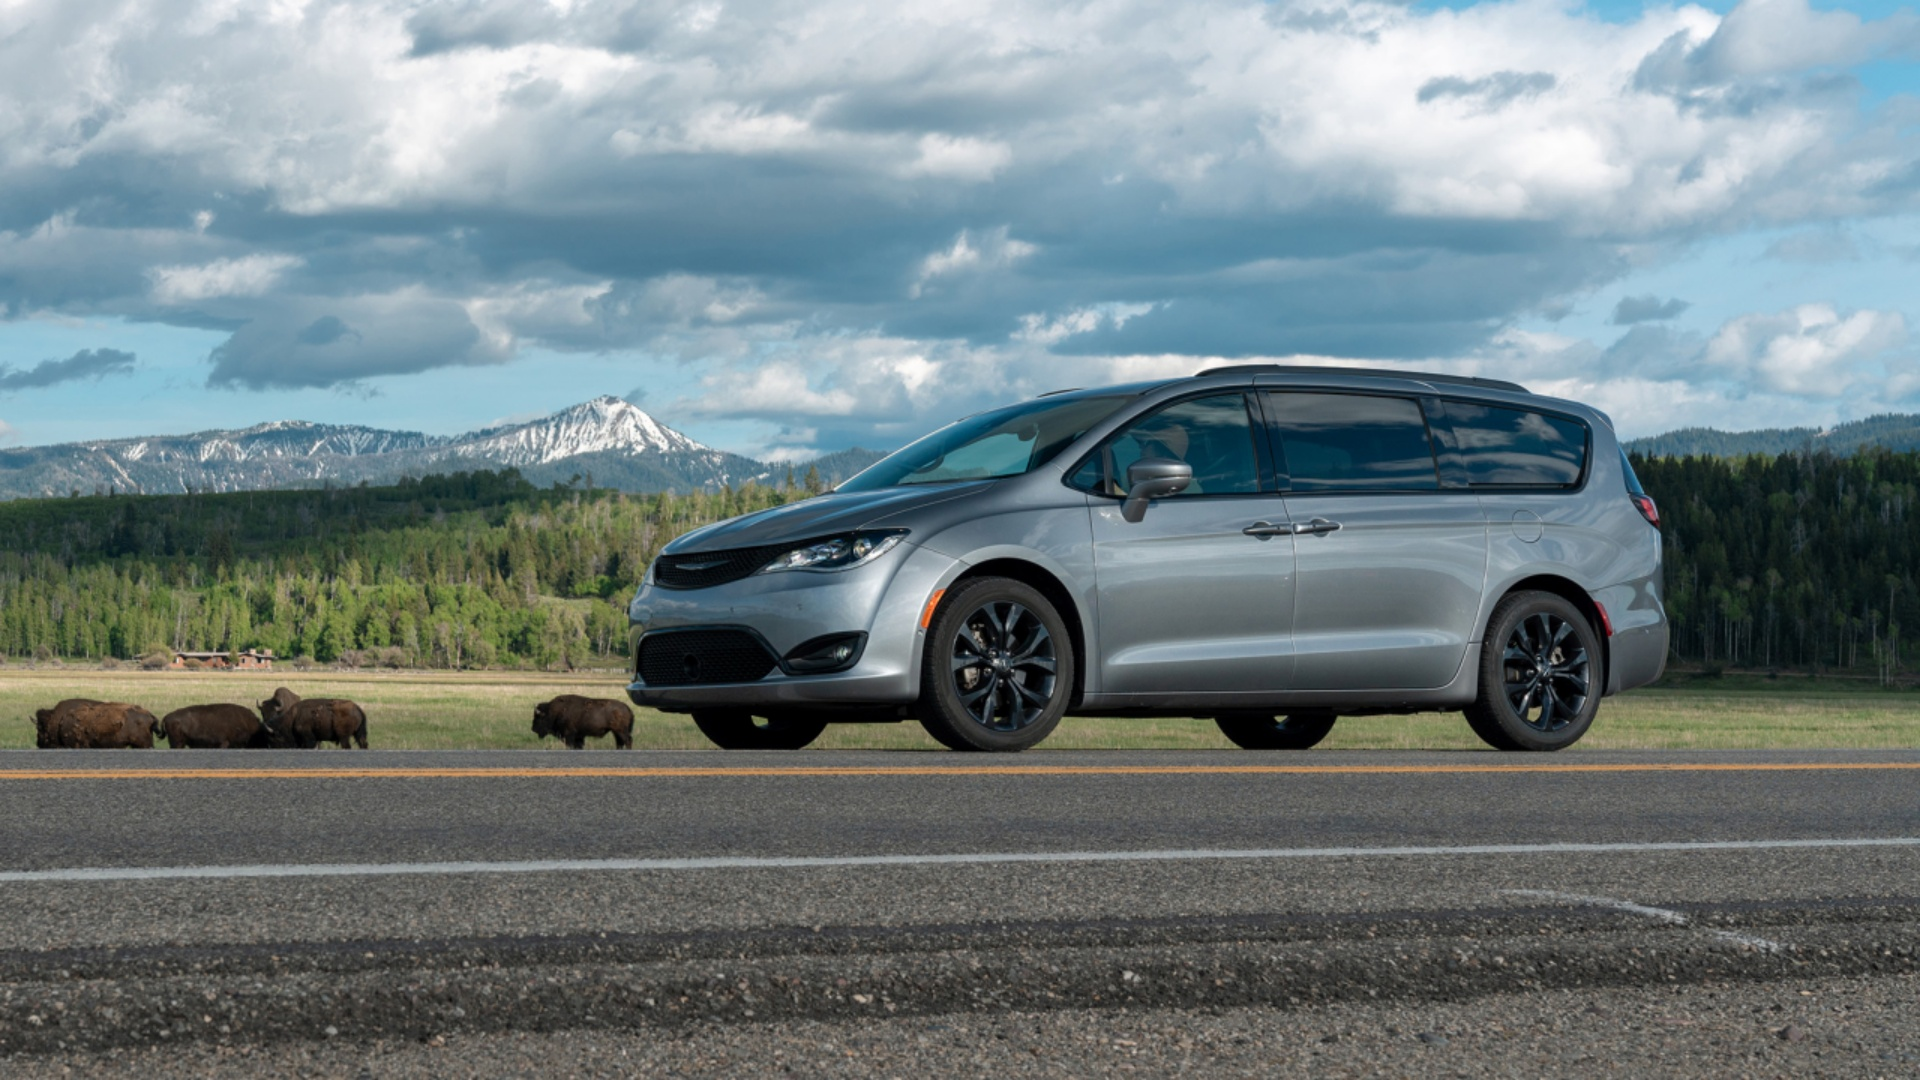 All-New 2020 Chrysler Voyager Joins Pacifica Minivans ...